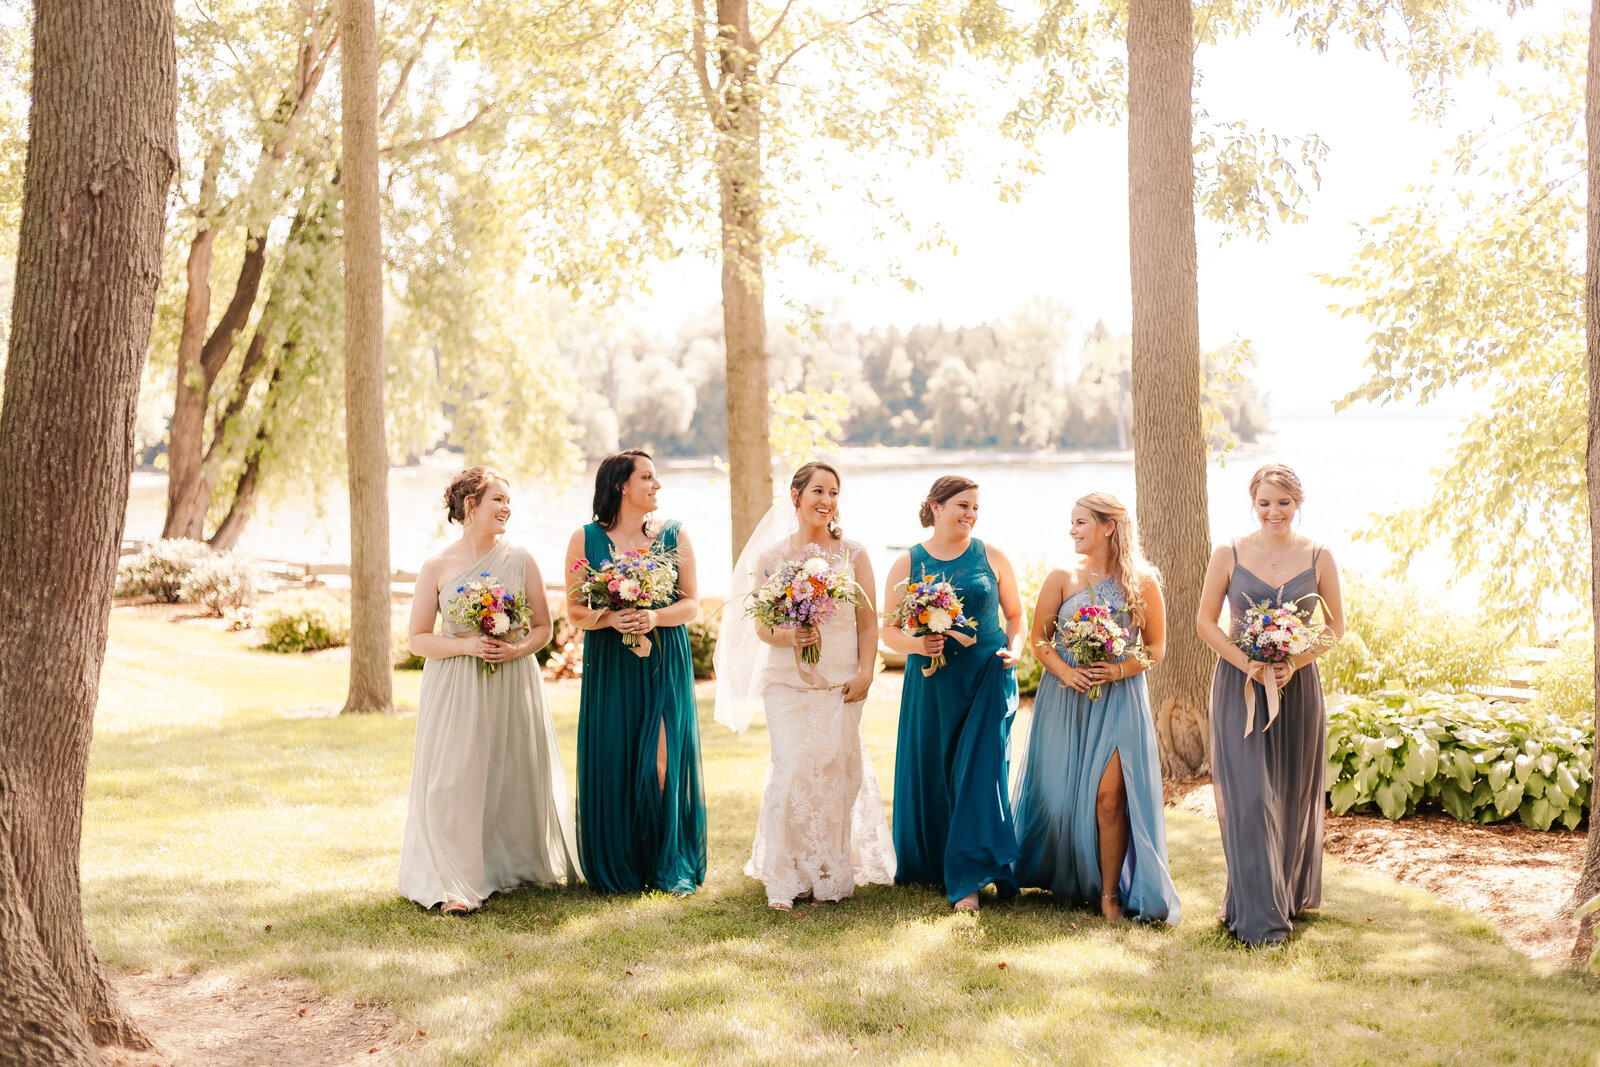 A Rustic Inspired Wedding at Ferry Watch (118 of 273)